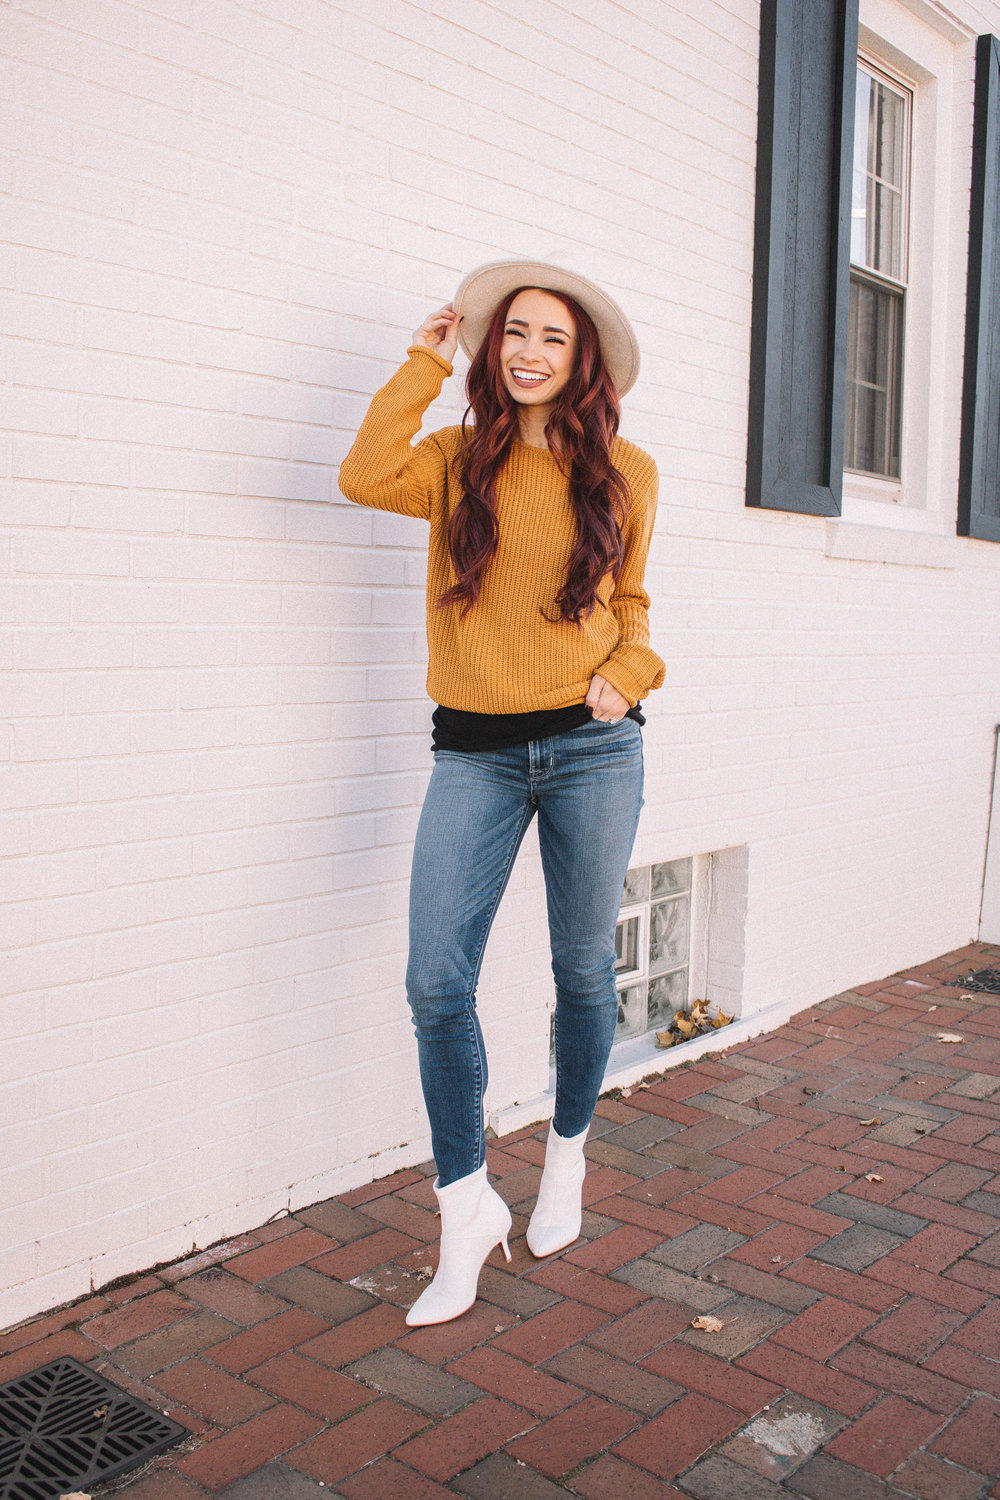 Shop small for the Holidays: The Standard Threads featured by top Indianapolis life and style blog, Trendy in Indy